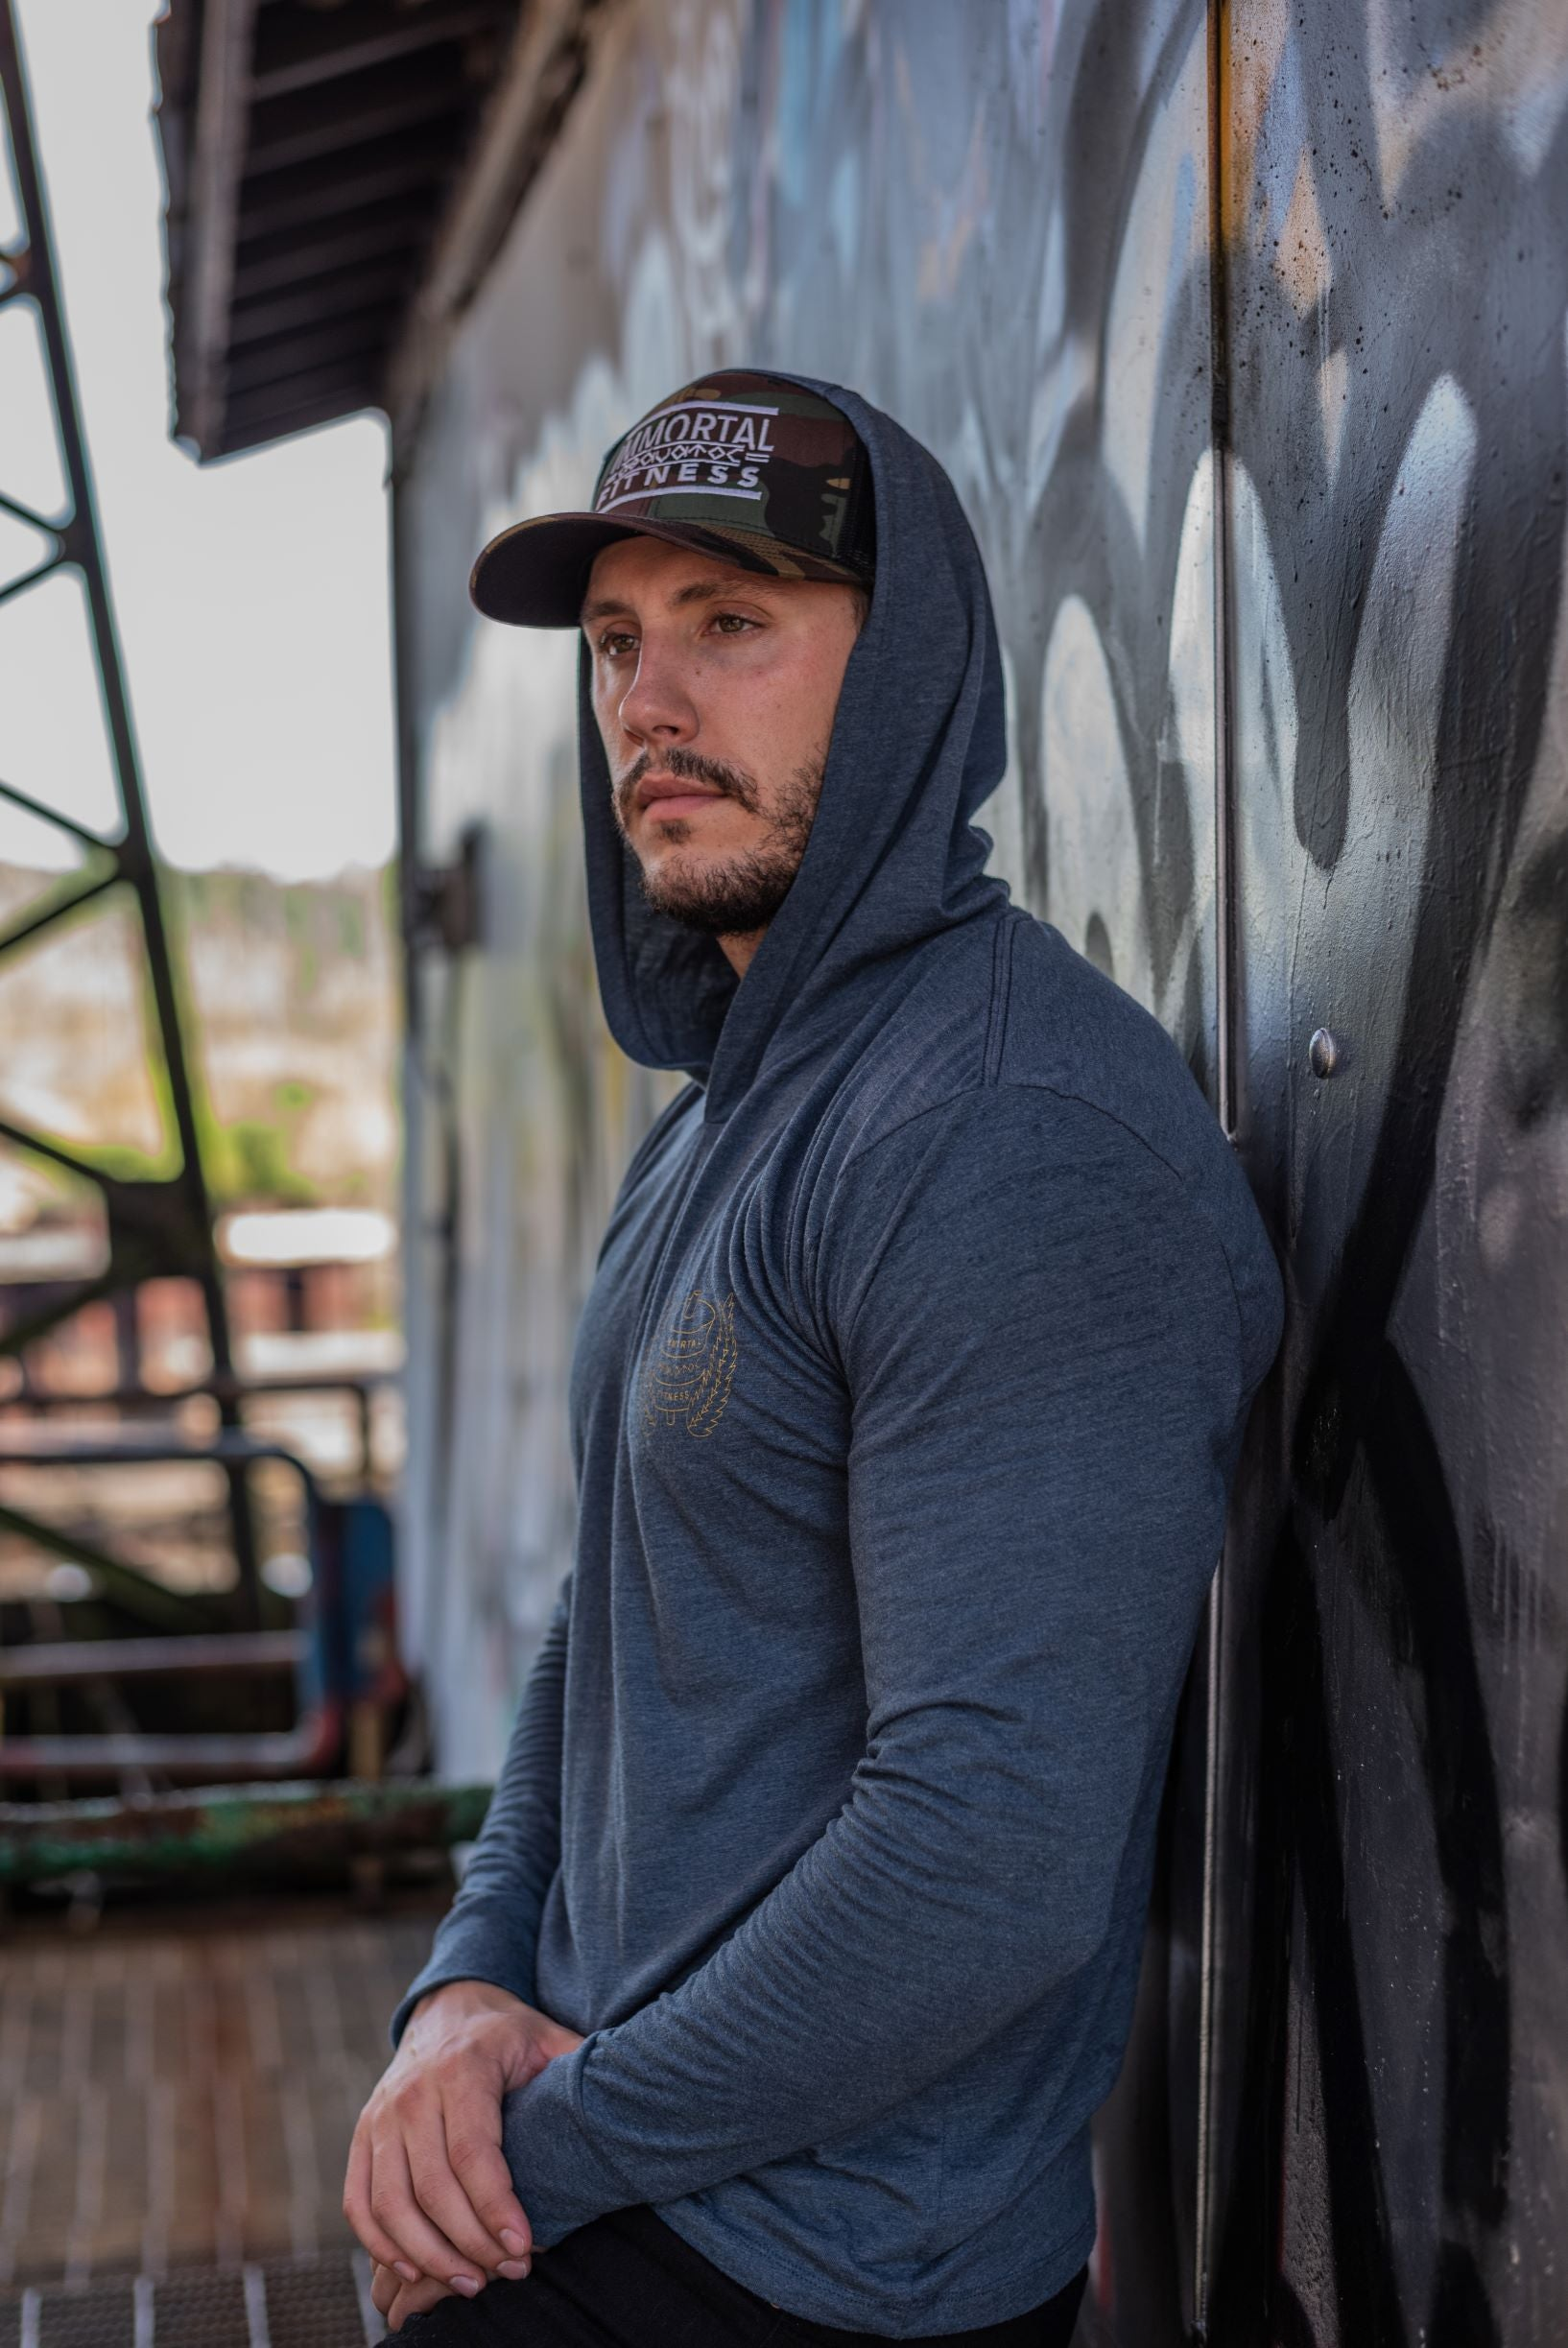 [Unique Apparels For Men & Women Online] - Immortal Fitness Apparel